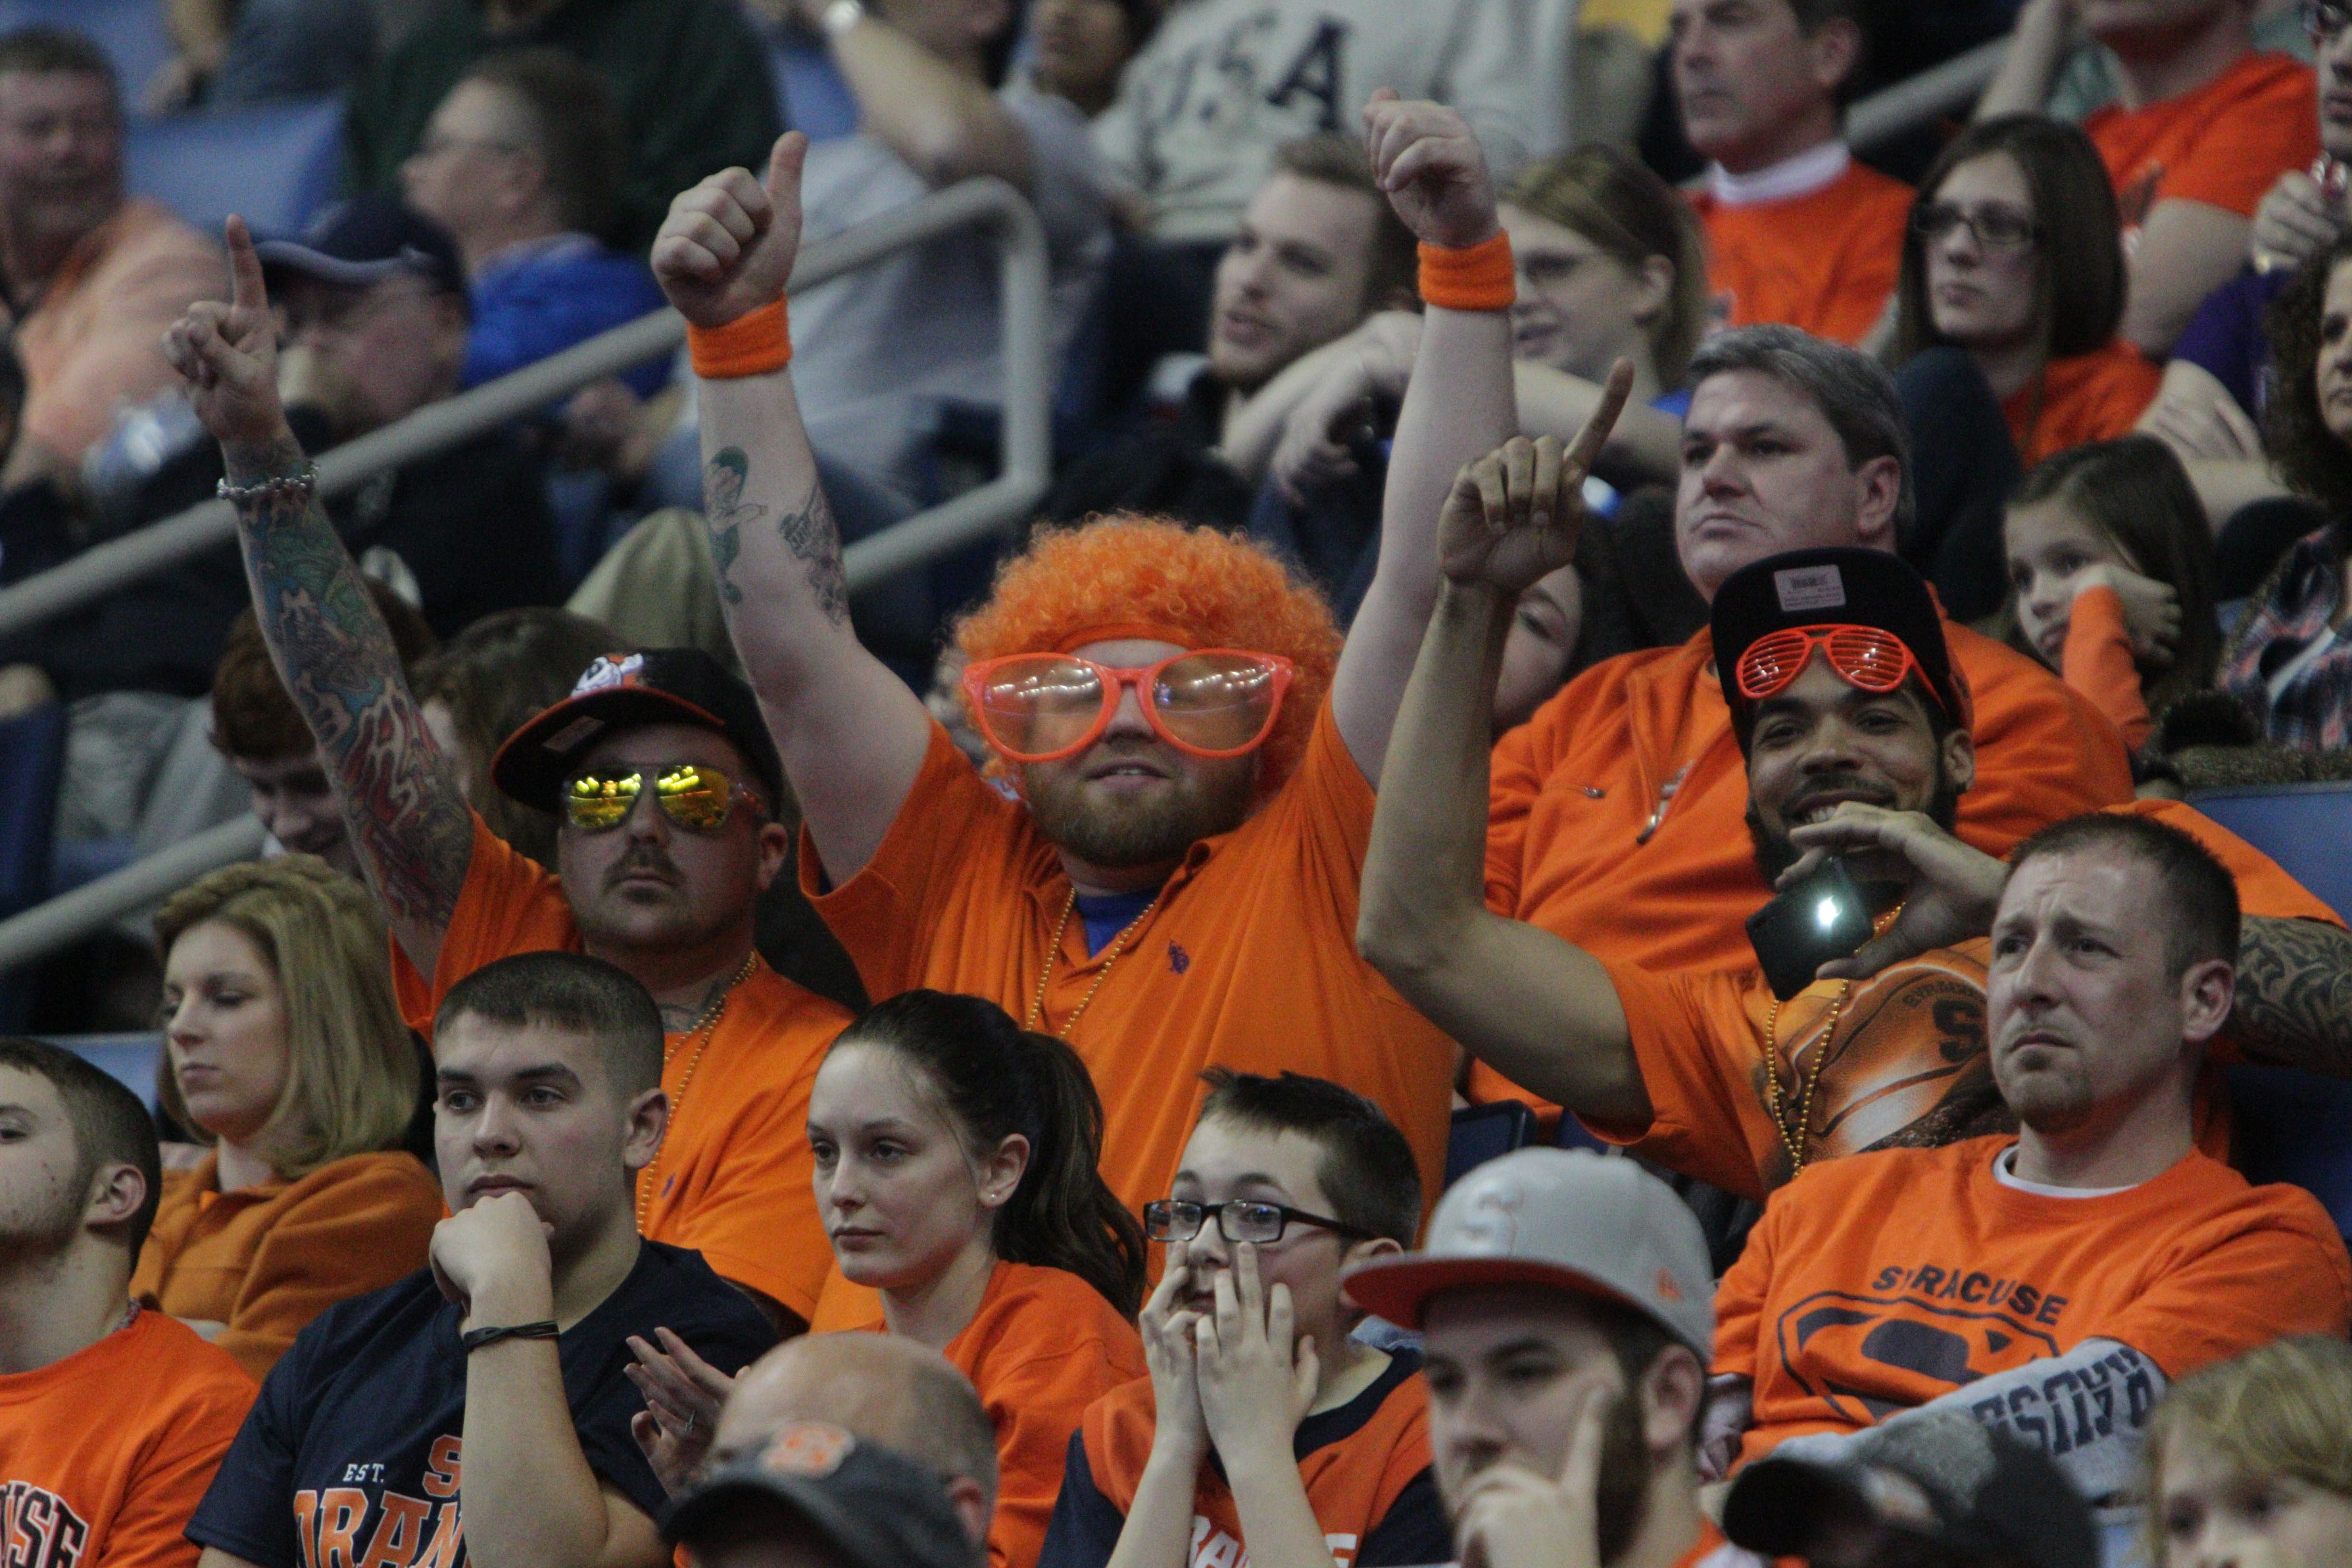 Syracuse fans cheer for their team during the second half of the game against Western Michigan in the men's NCAA college basketball tournament at First Niagara Center, Thursday, March 20, 2014.  (Sharon Cantillon/Buffalo News)